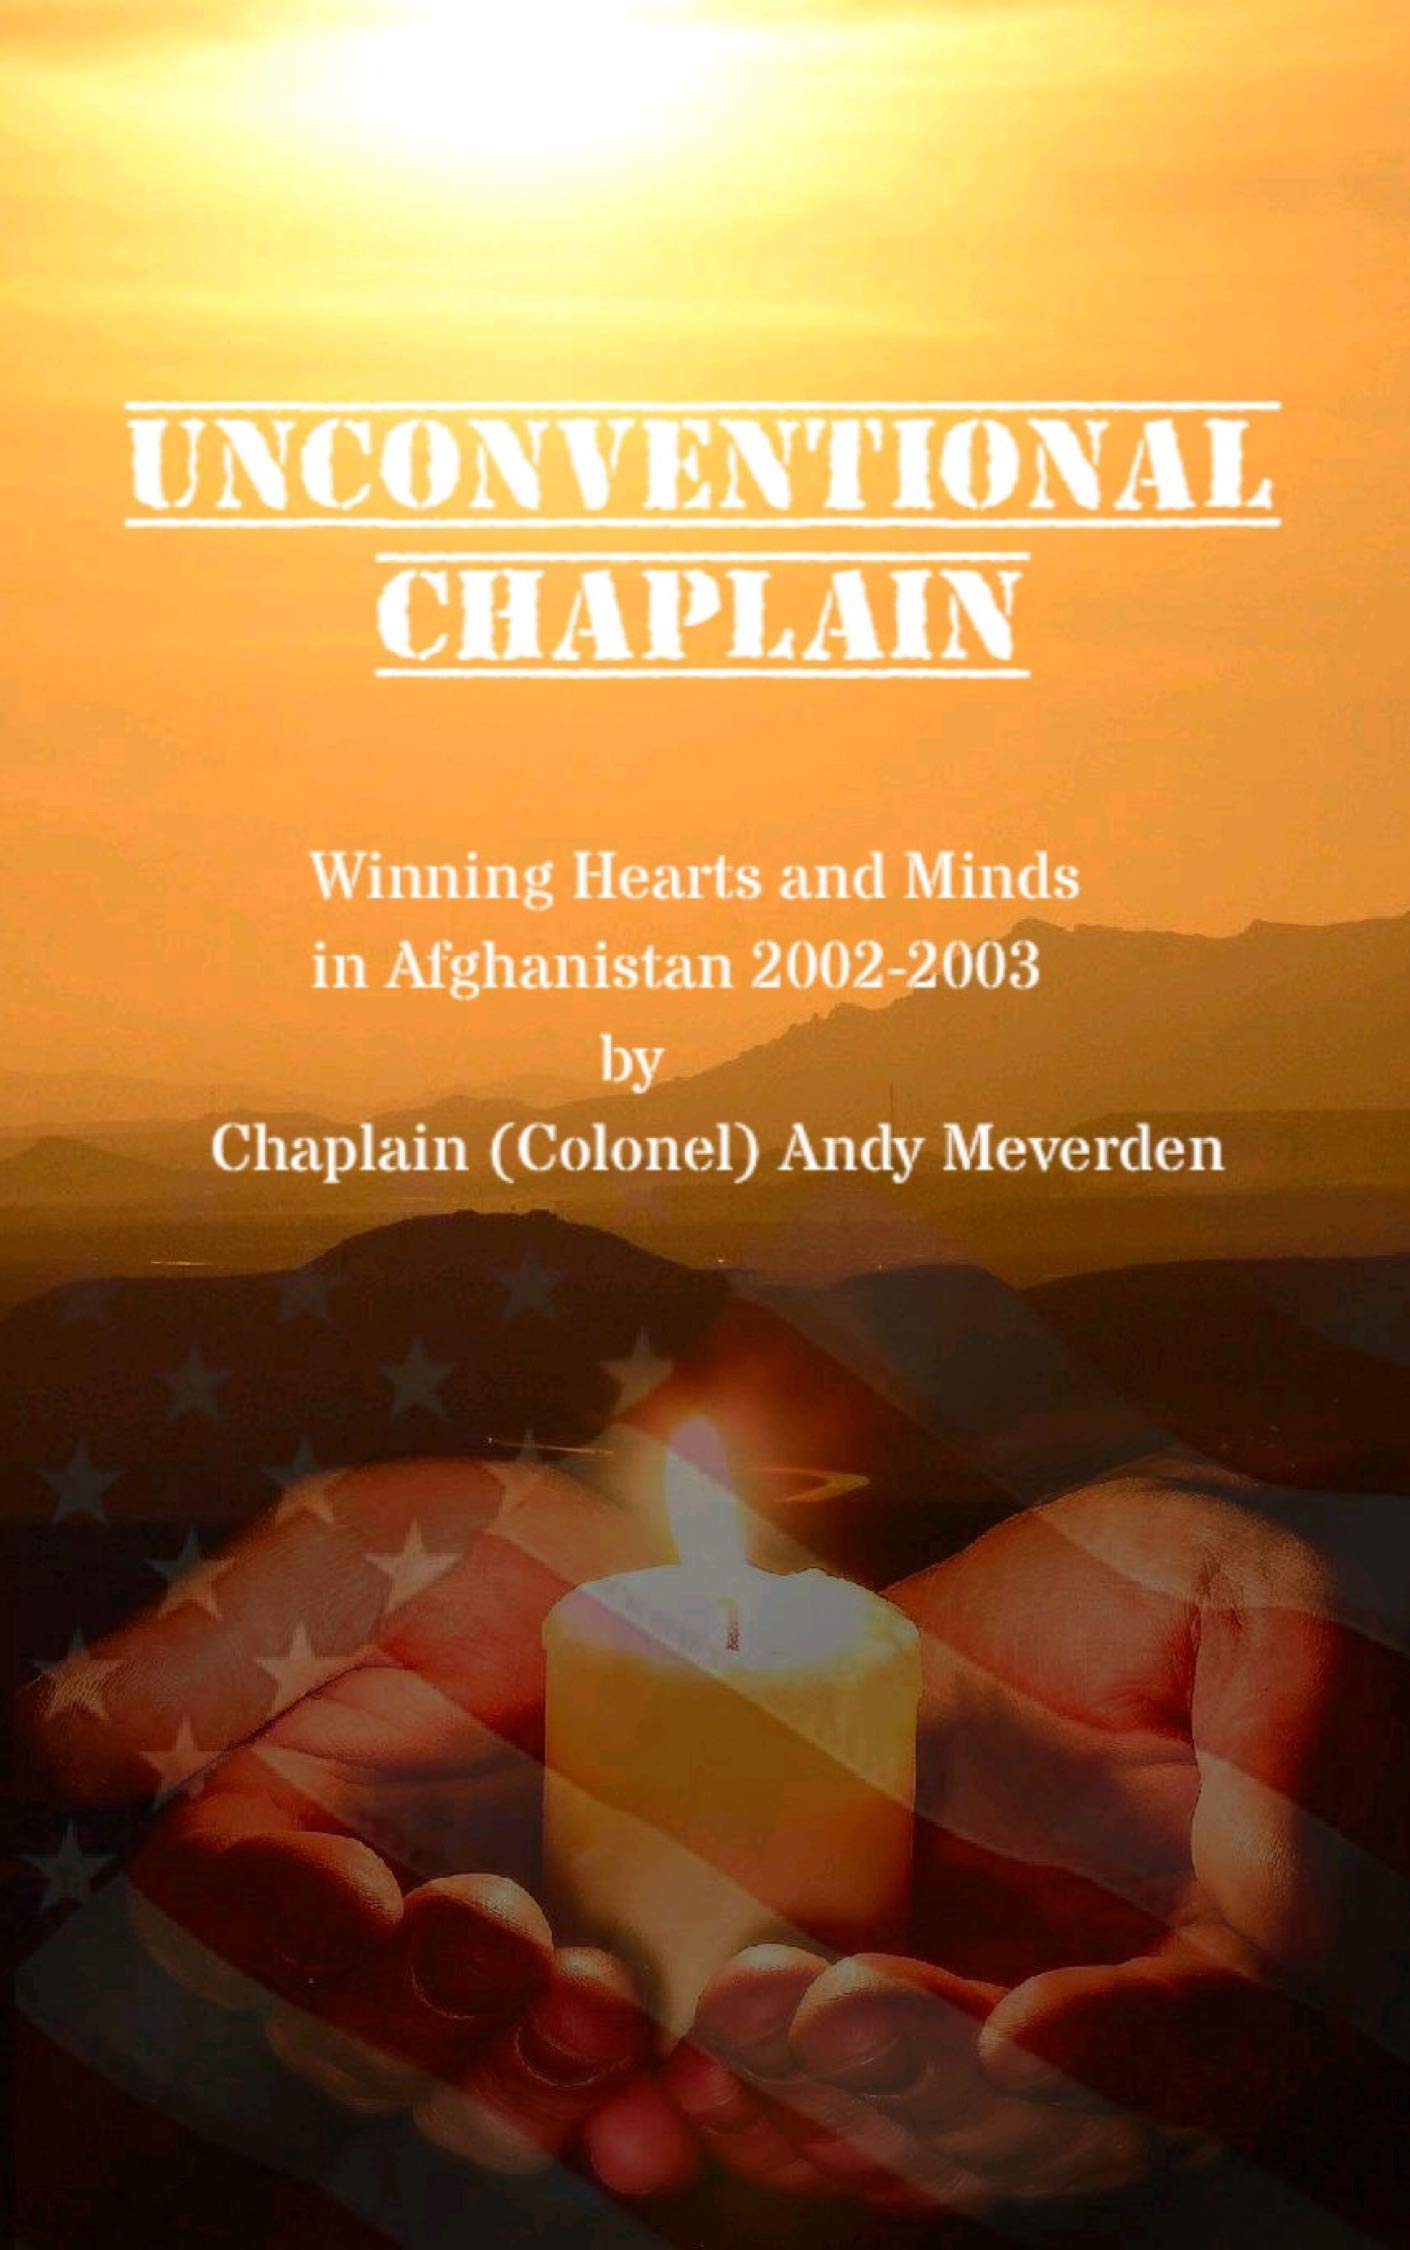 Unconventional Chaplain: Winning Hearts and Minds in Afghanistan 2002-2003